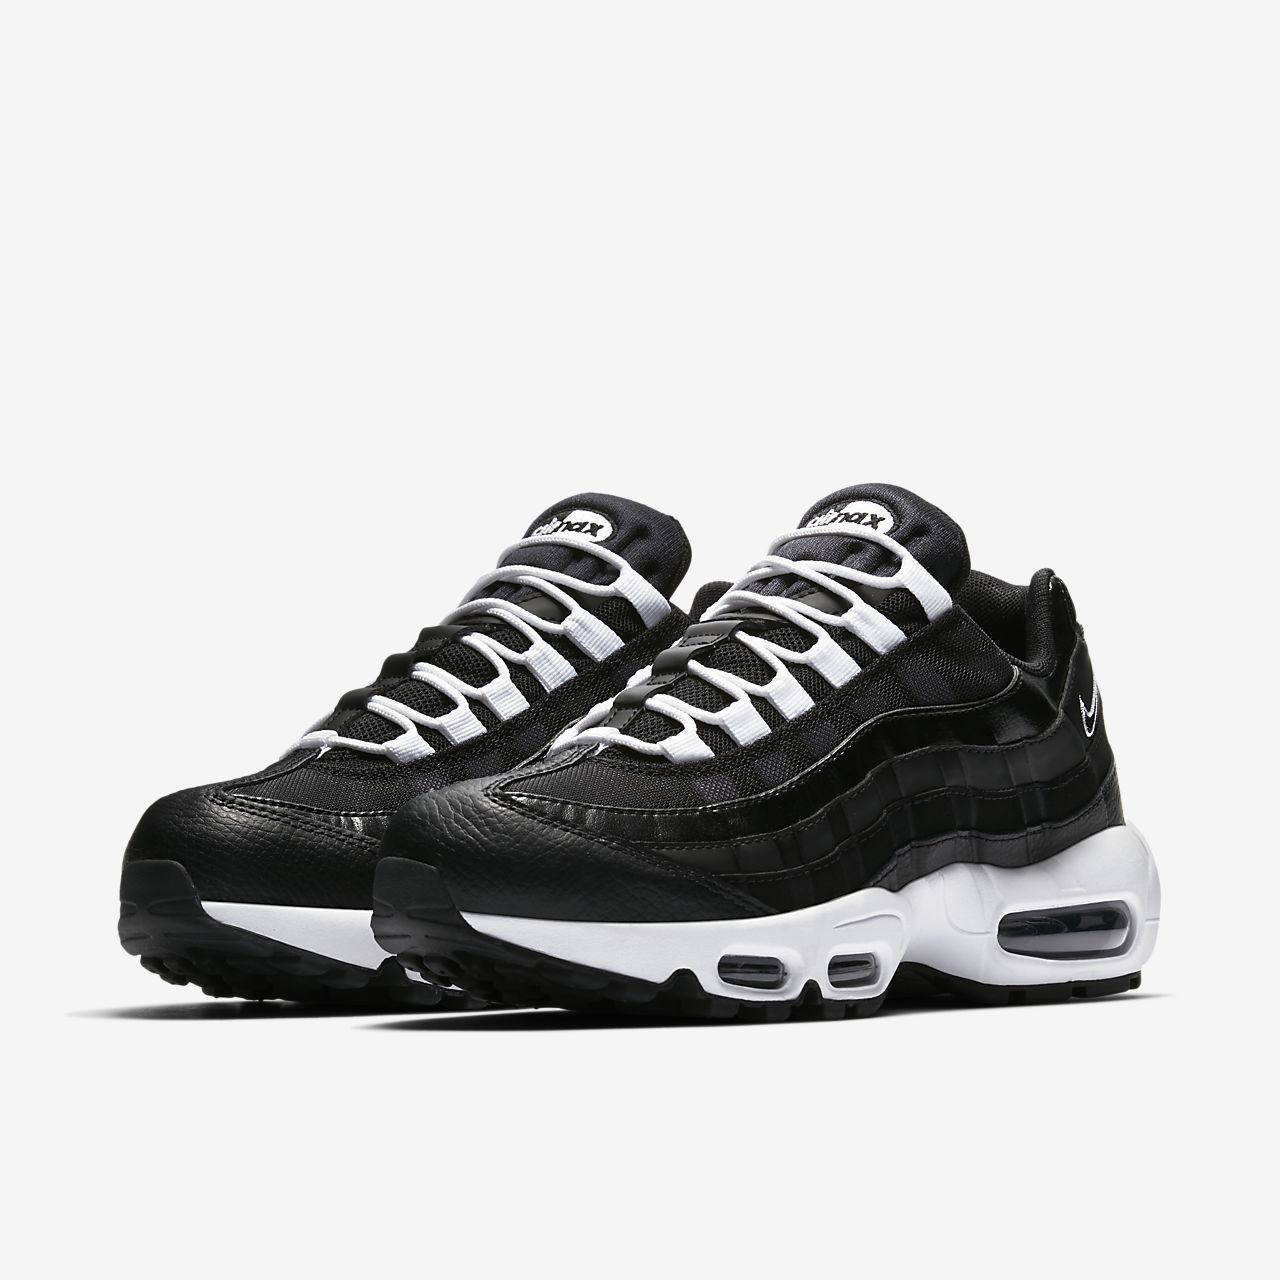 newest 79613 893c9 ... coupon code for nike air max 95 og womens shoe 4eebb efc86